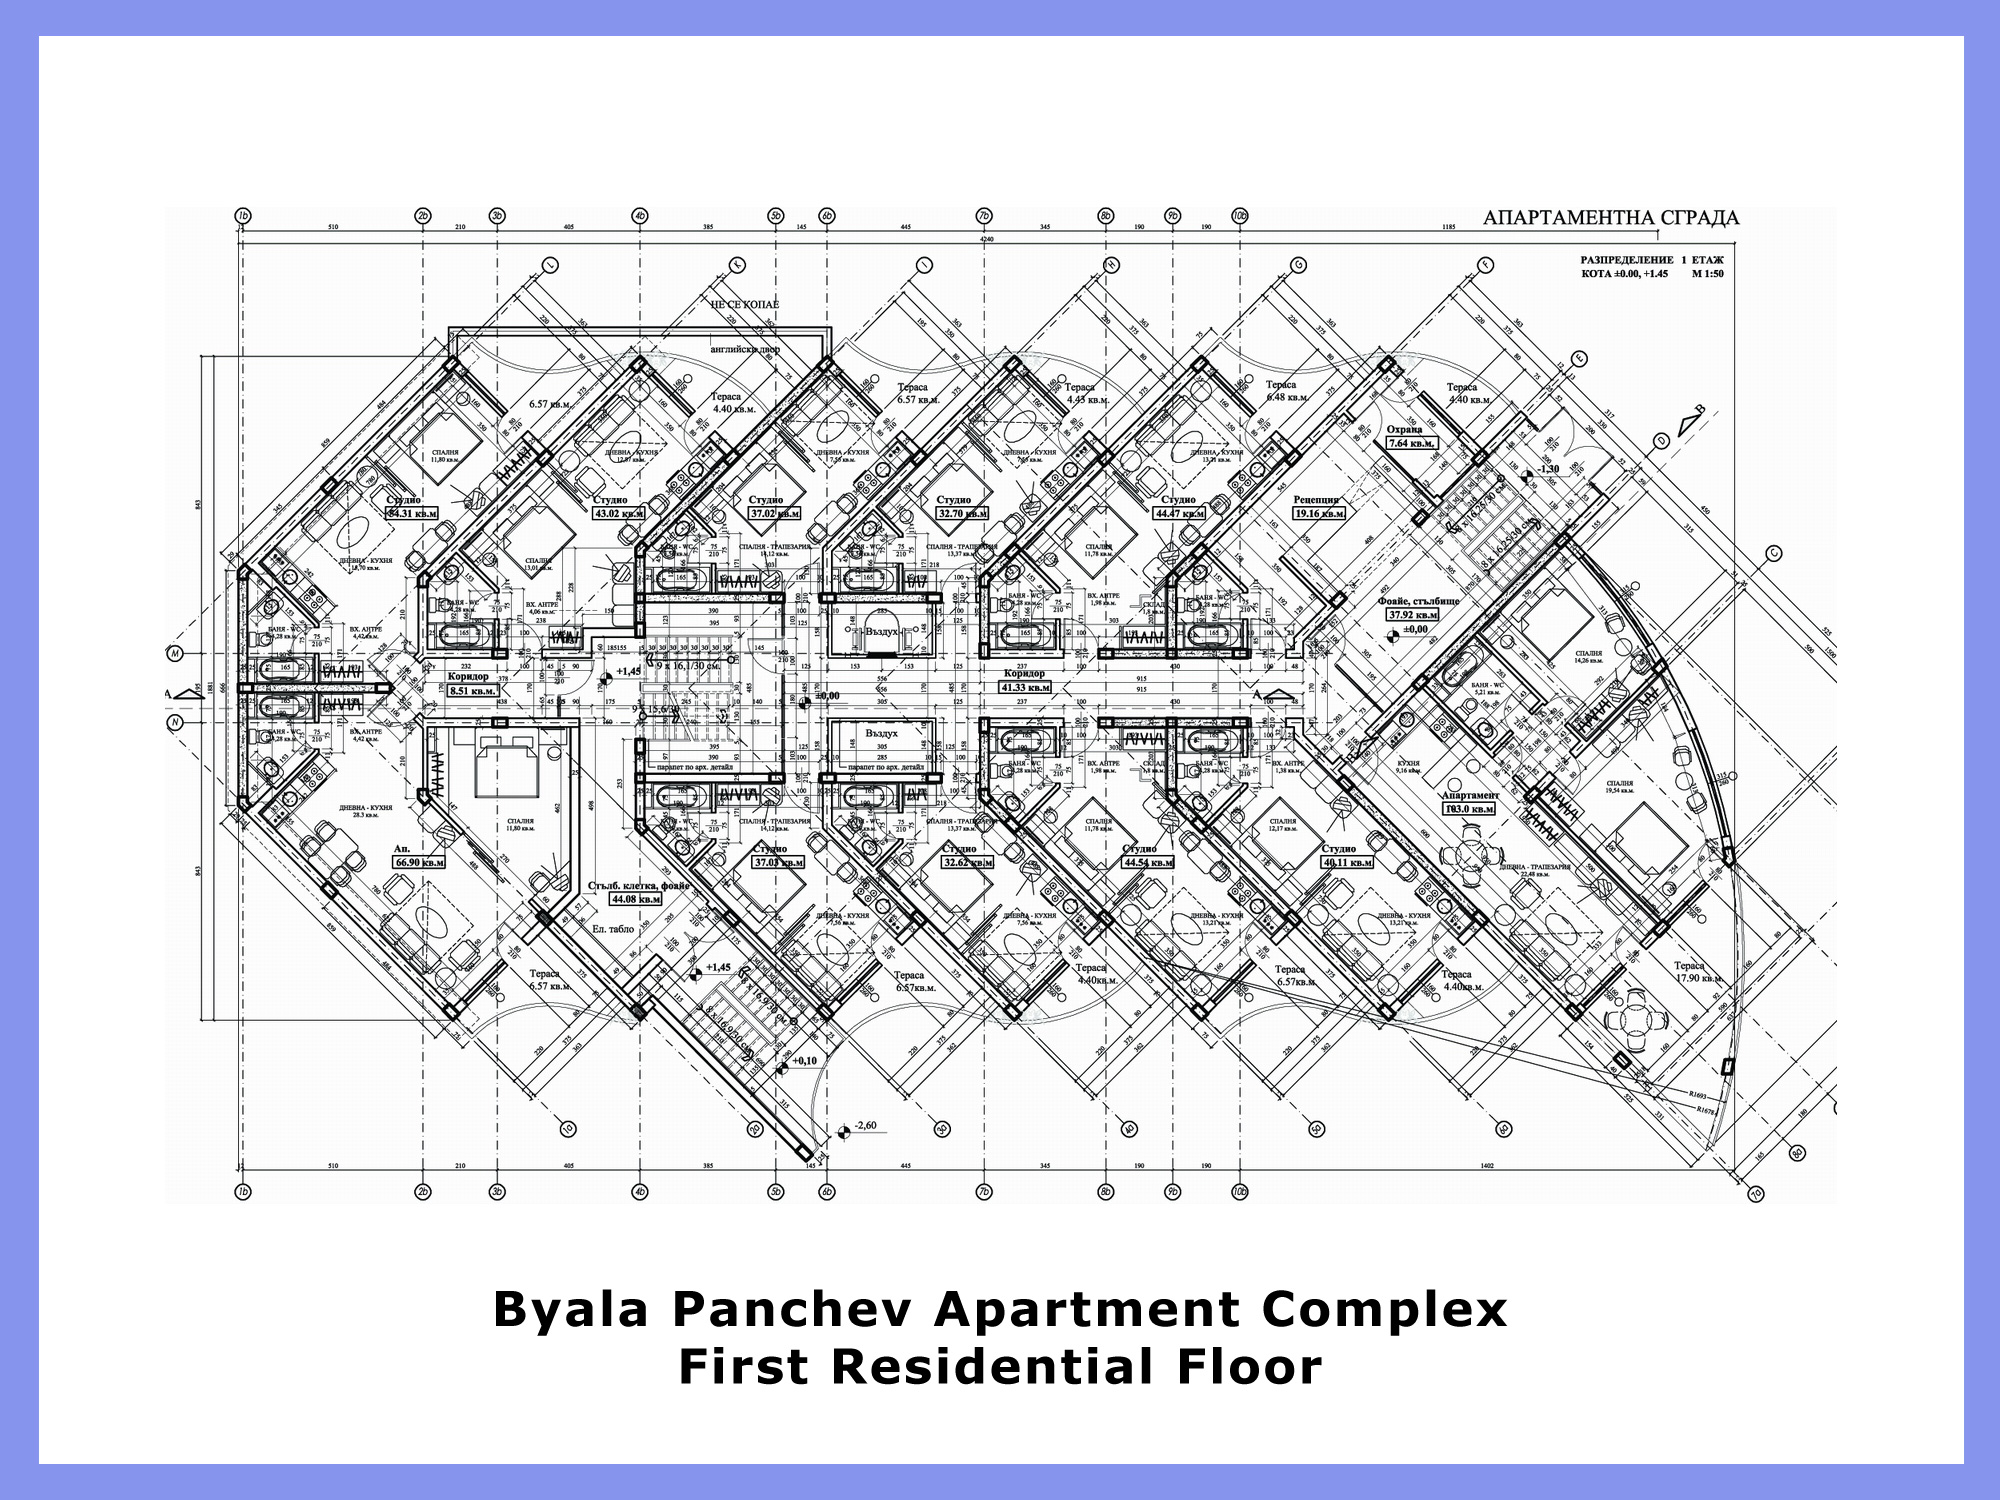 28 apartment complex floor plans 171 architectural for Apartment complex building plans